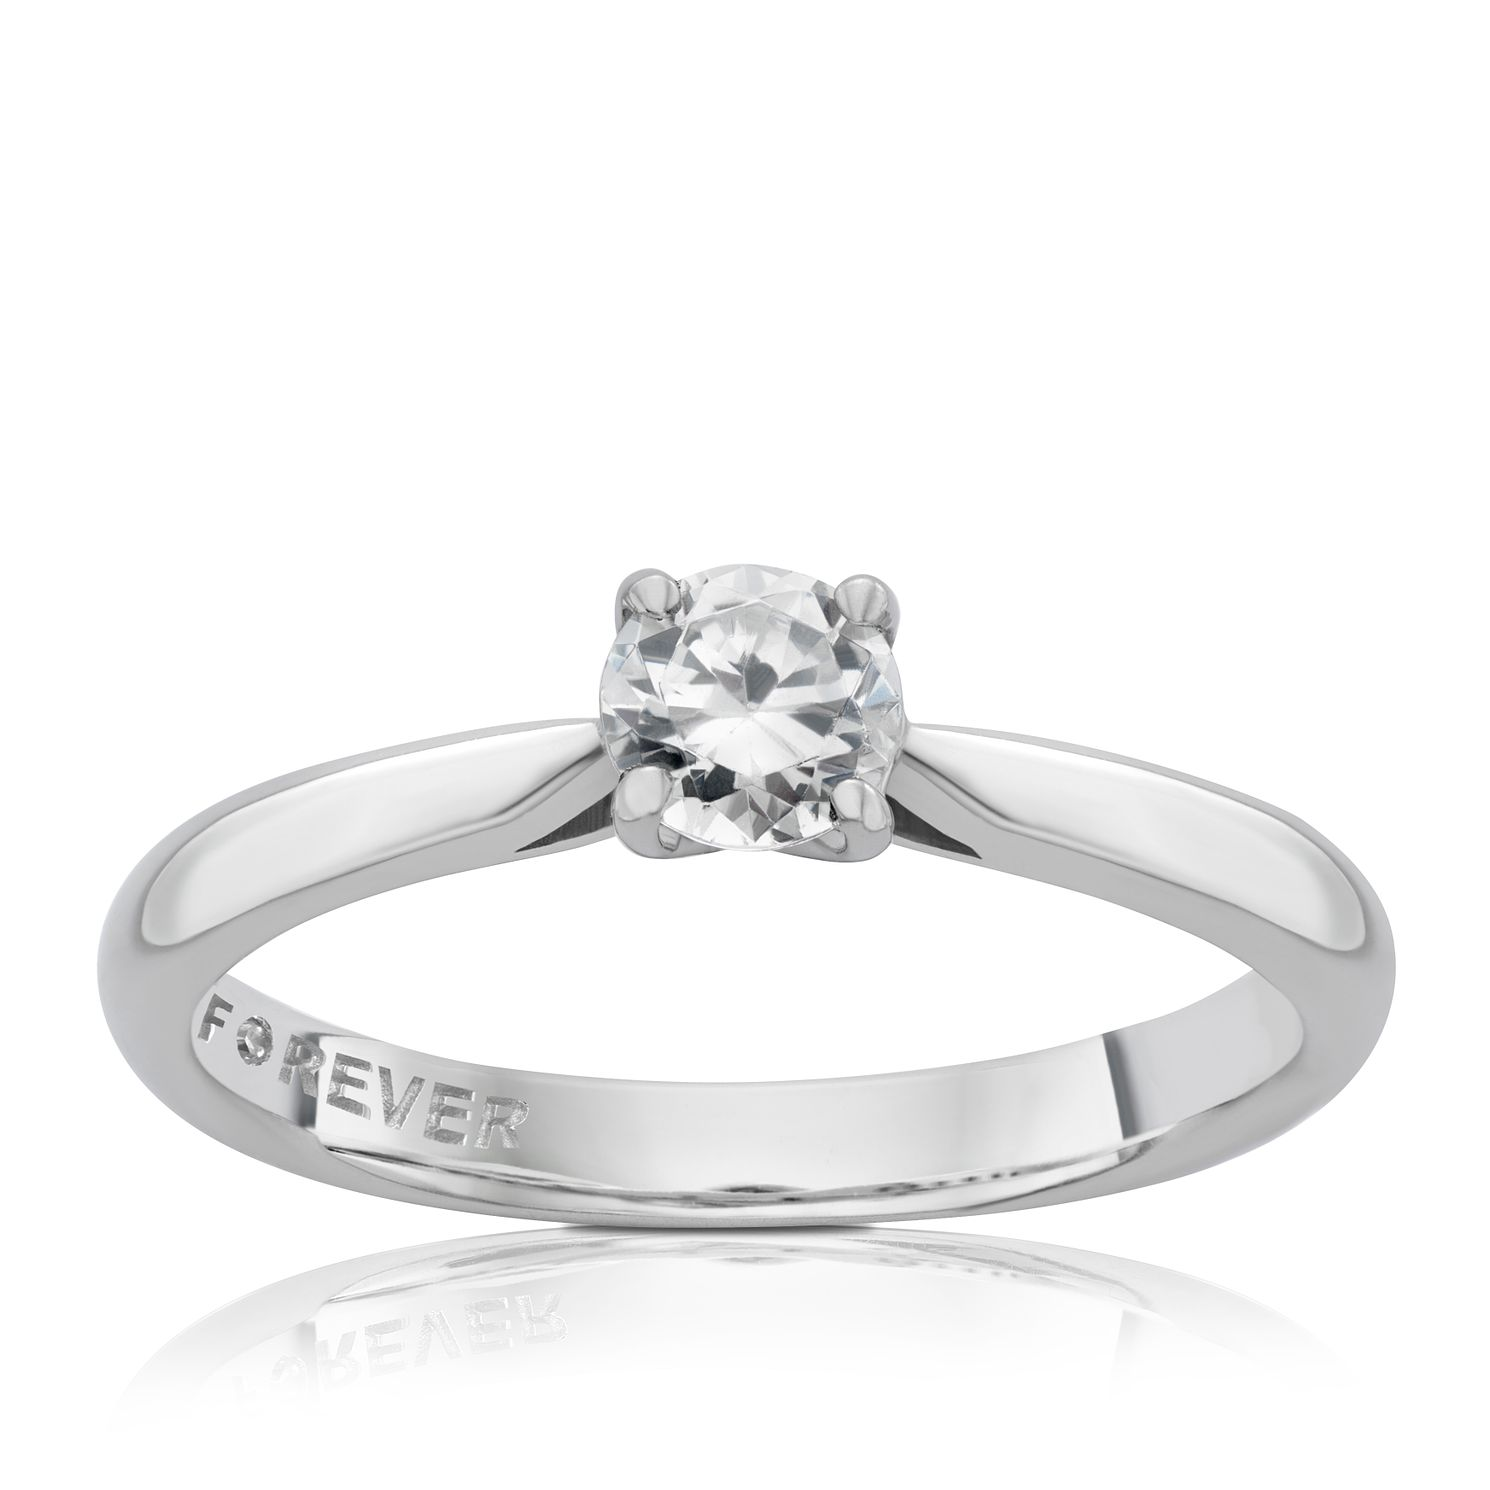 Platinum 1/3 Carat Forever Diamond Ring - Product number 4183533